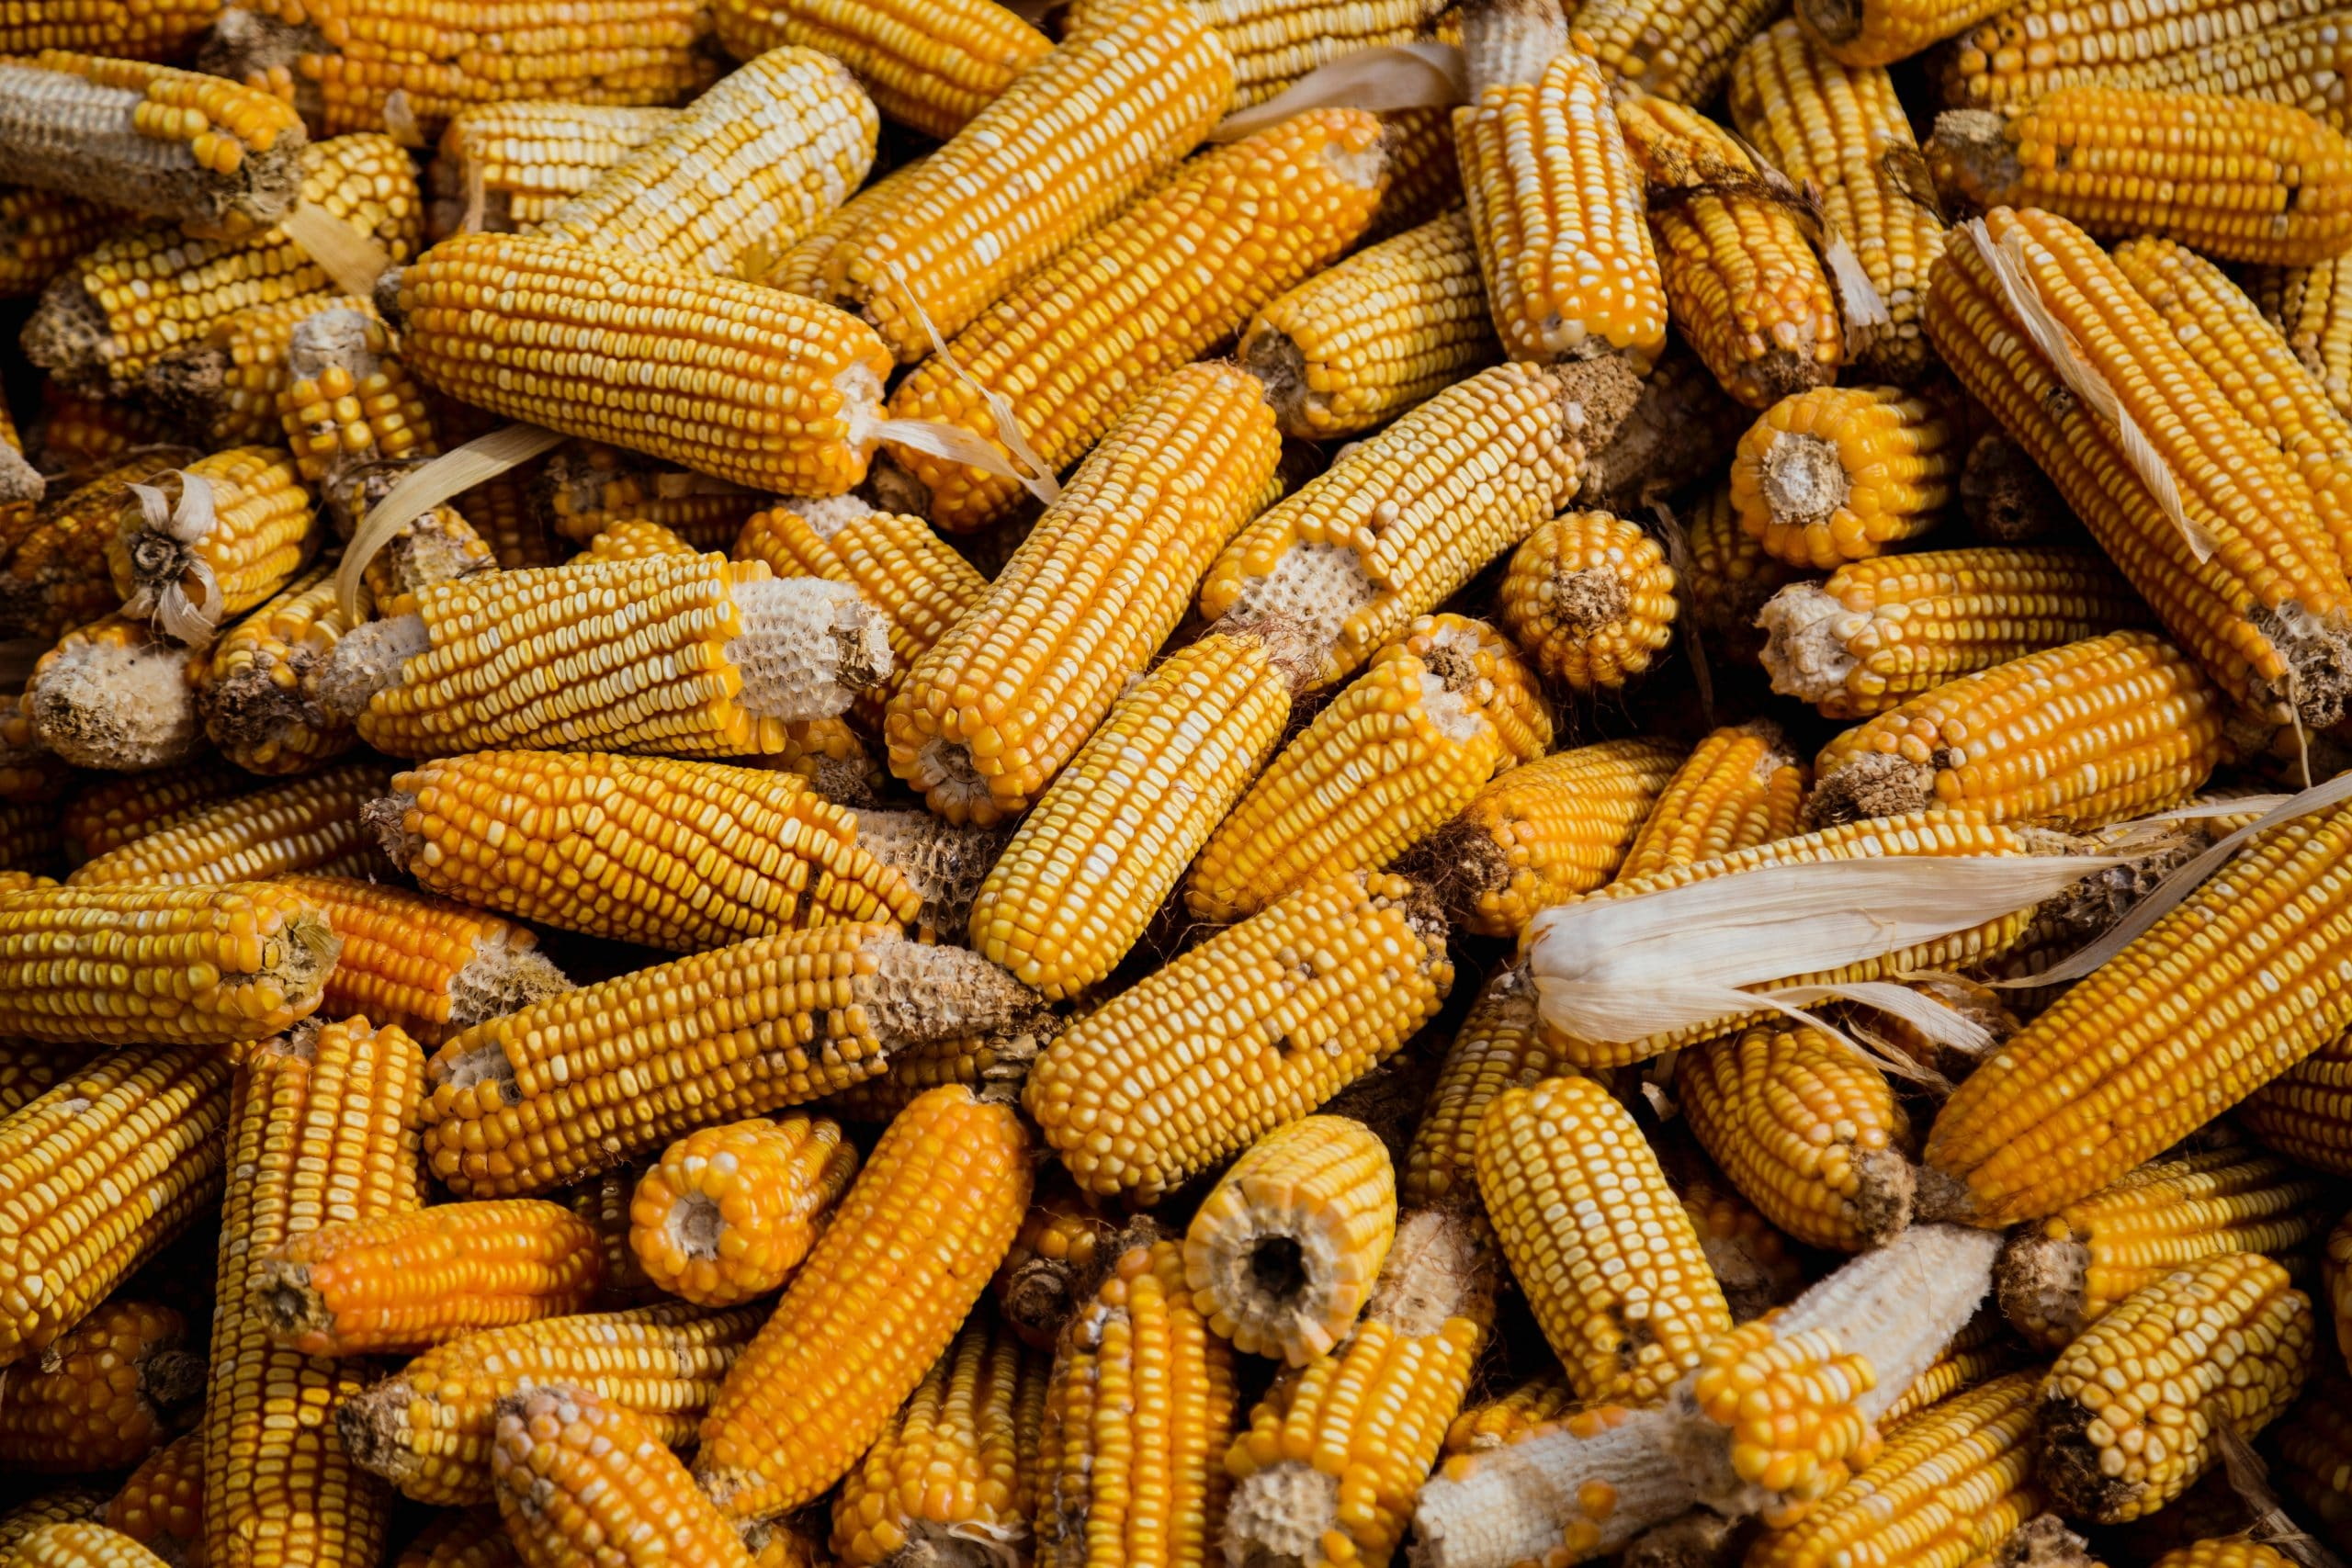 The Signs of Corn Spoilage